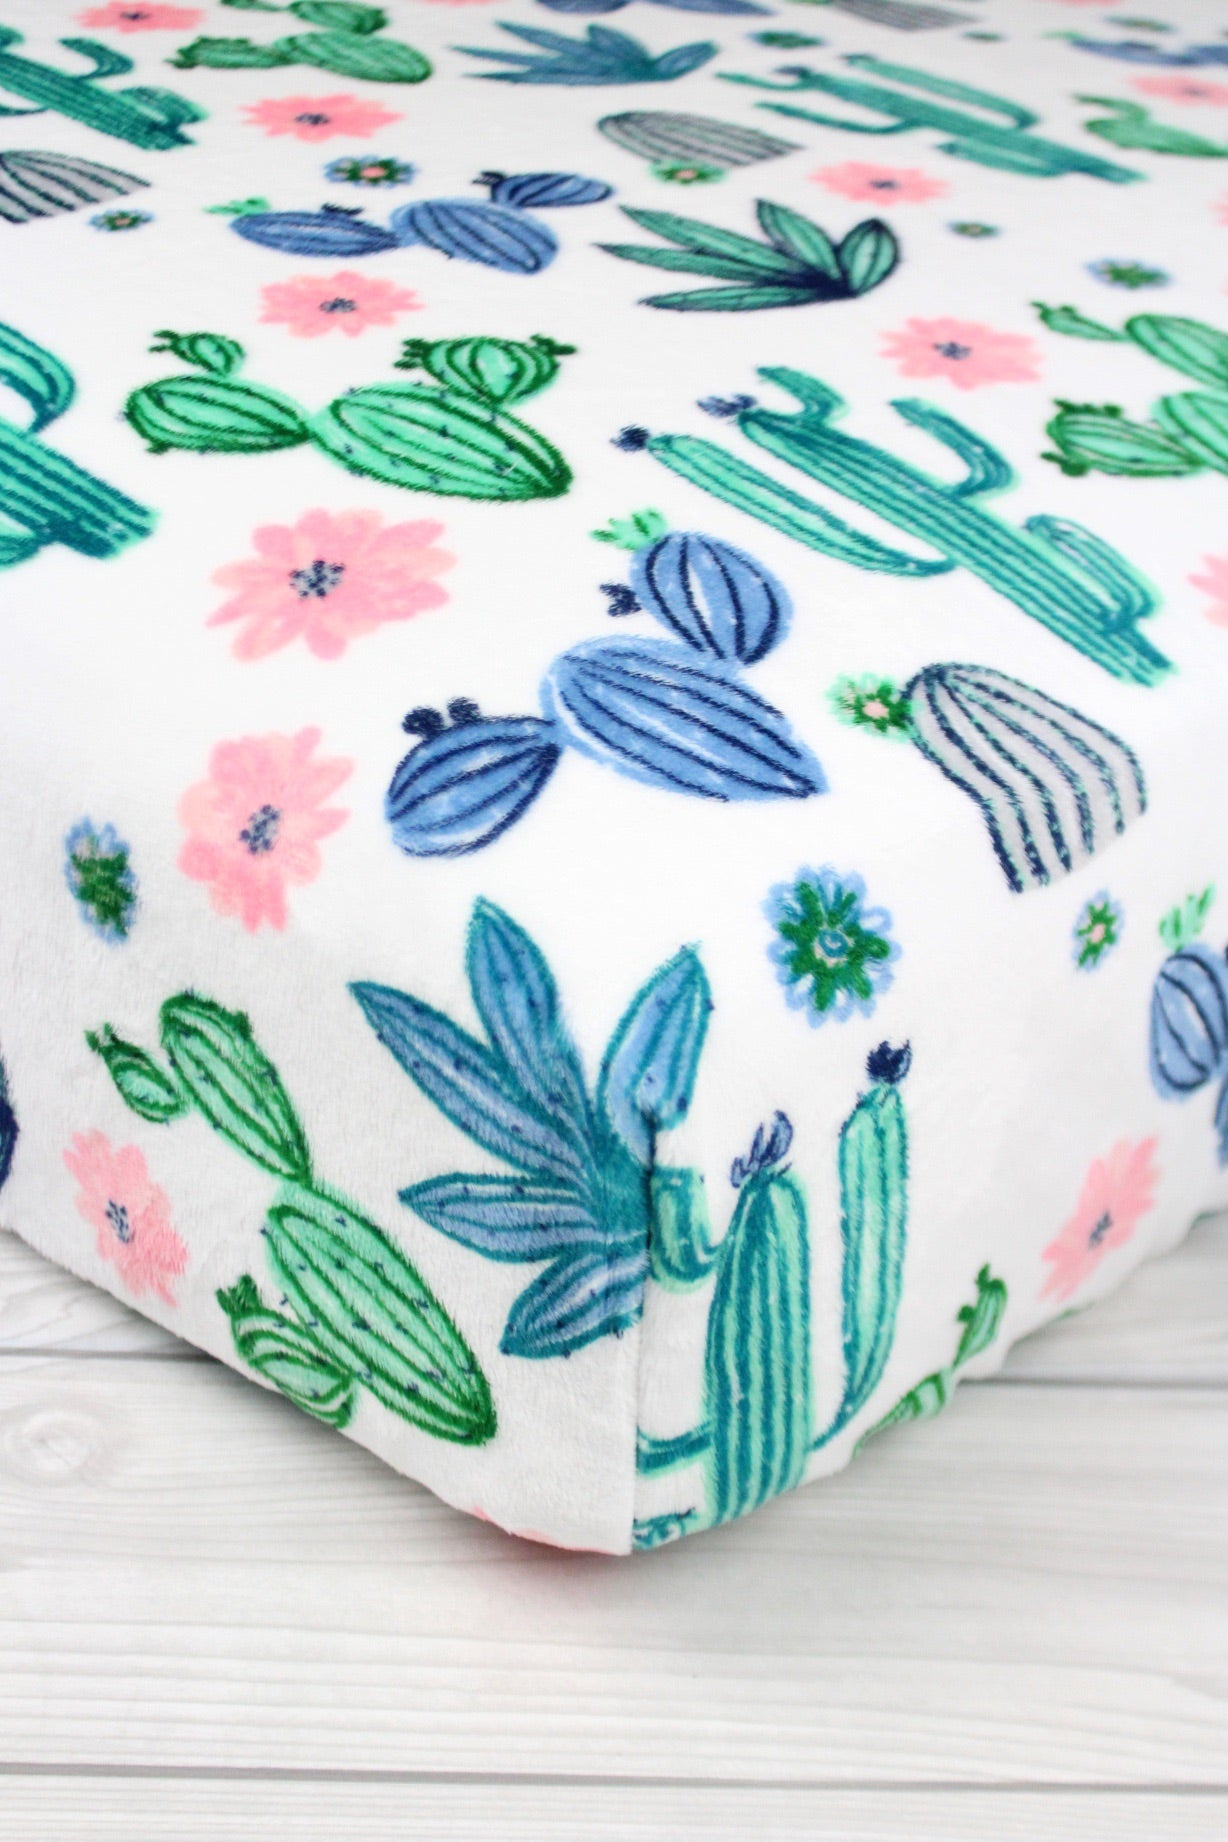 Cactus Minky Crib Sheet or Changing Pad Cover